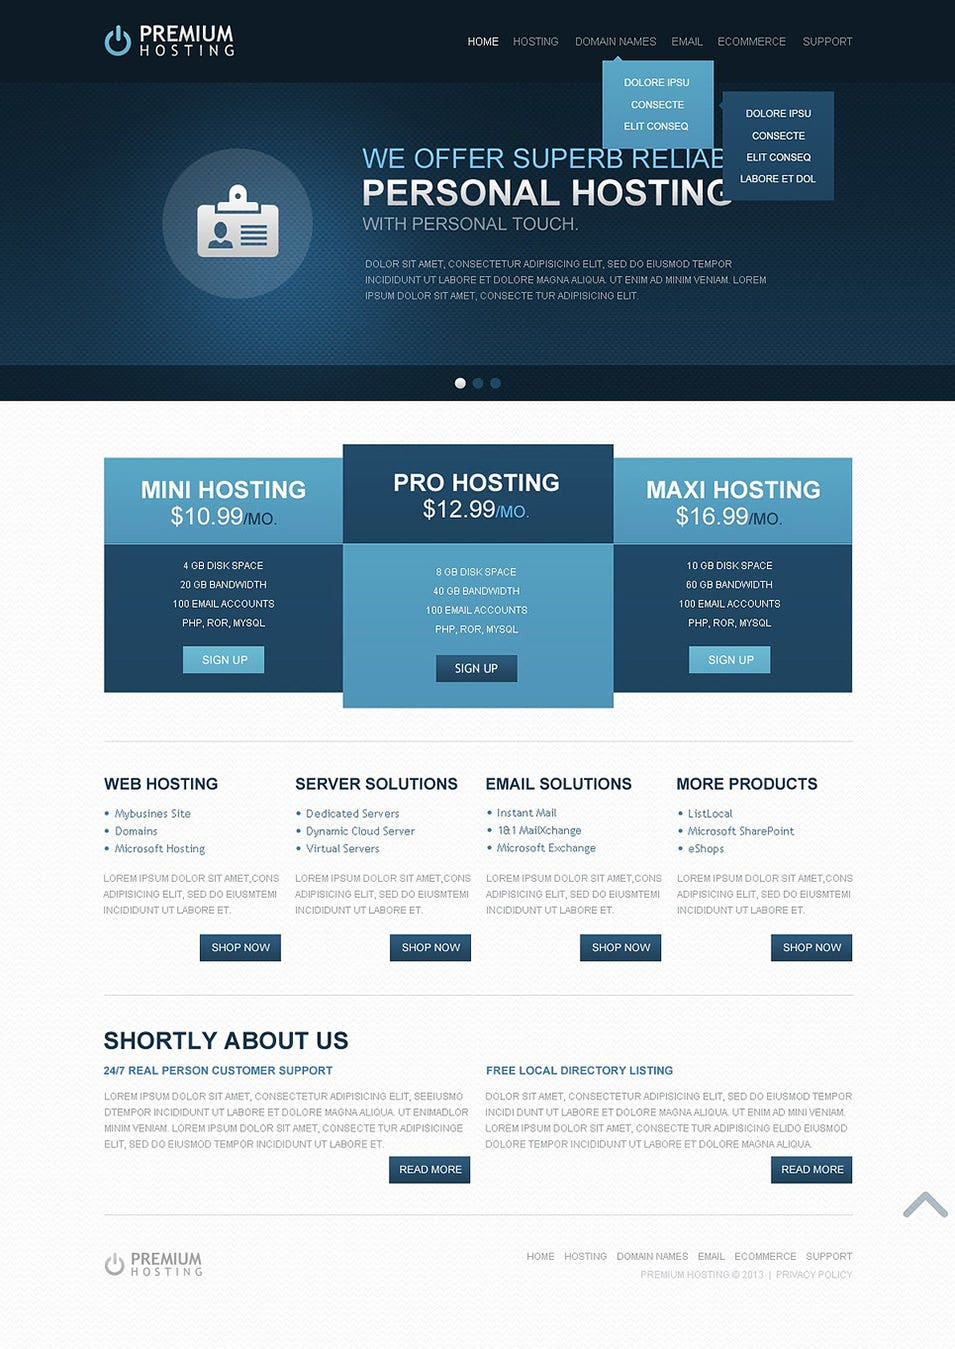 39 Best Web Hosting Website Templates & Themes | Free & Premium ...